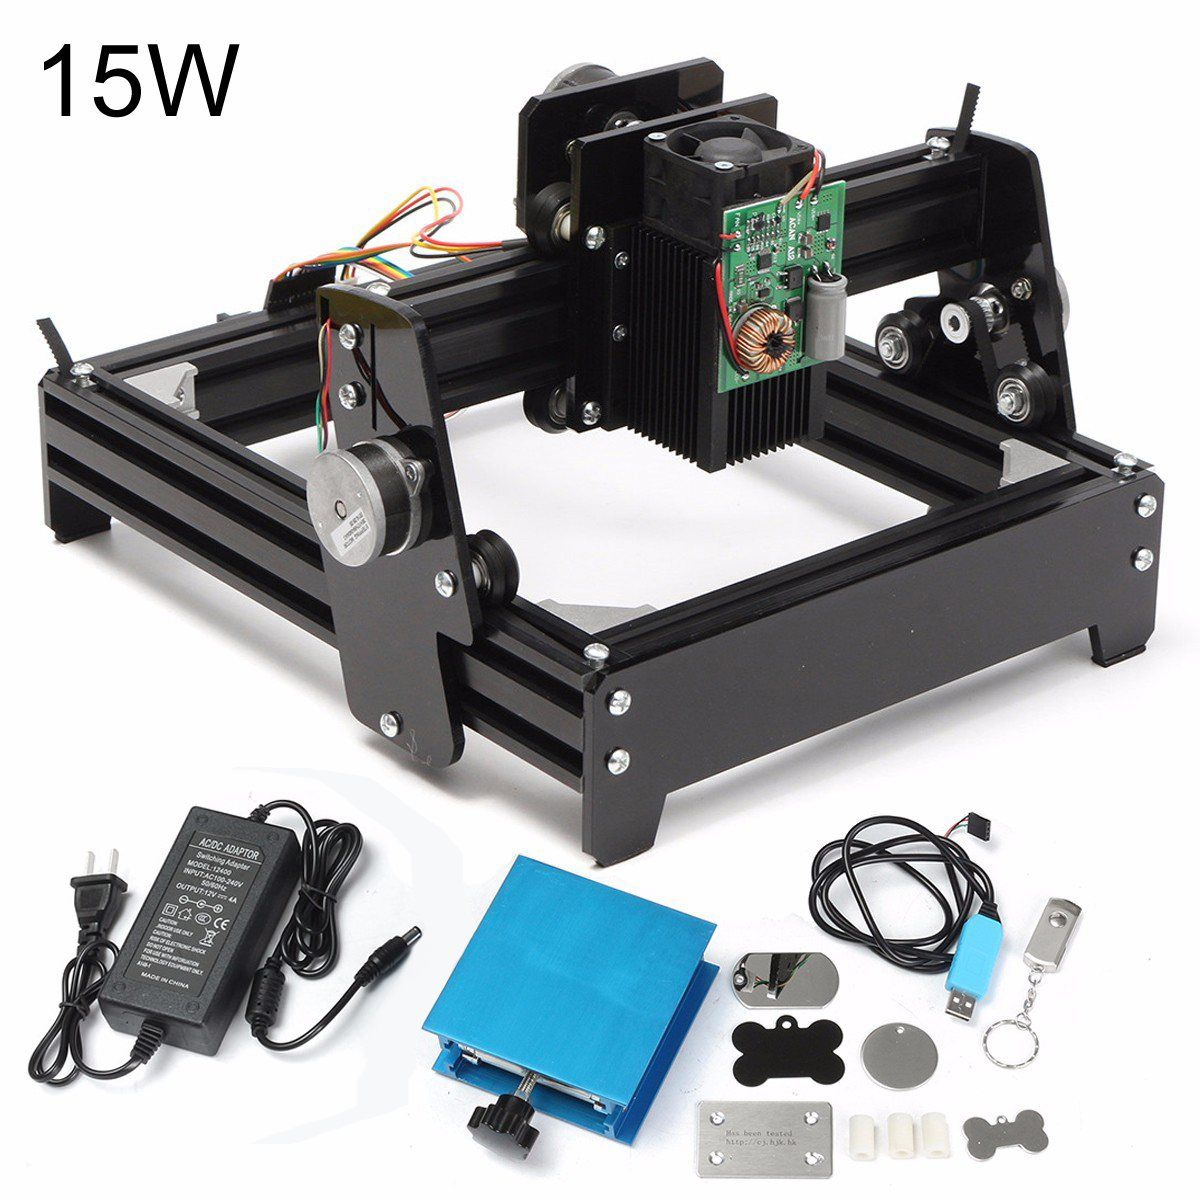 15W Laser AS-5 USB Desktop 15000mW CNC Laser Engraver DIY Marking Machine For Metal Stone Wood Engraving Area 14 x 20cm